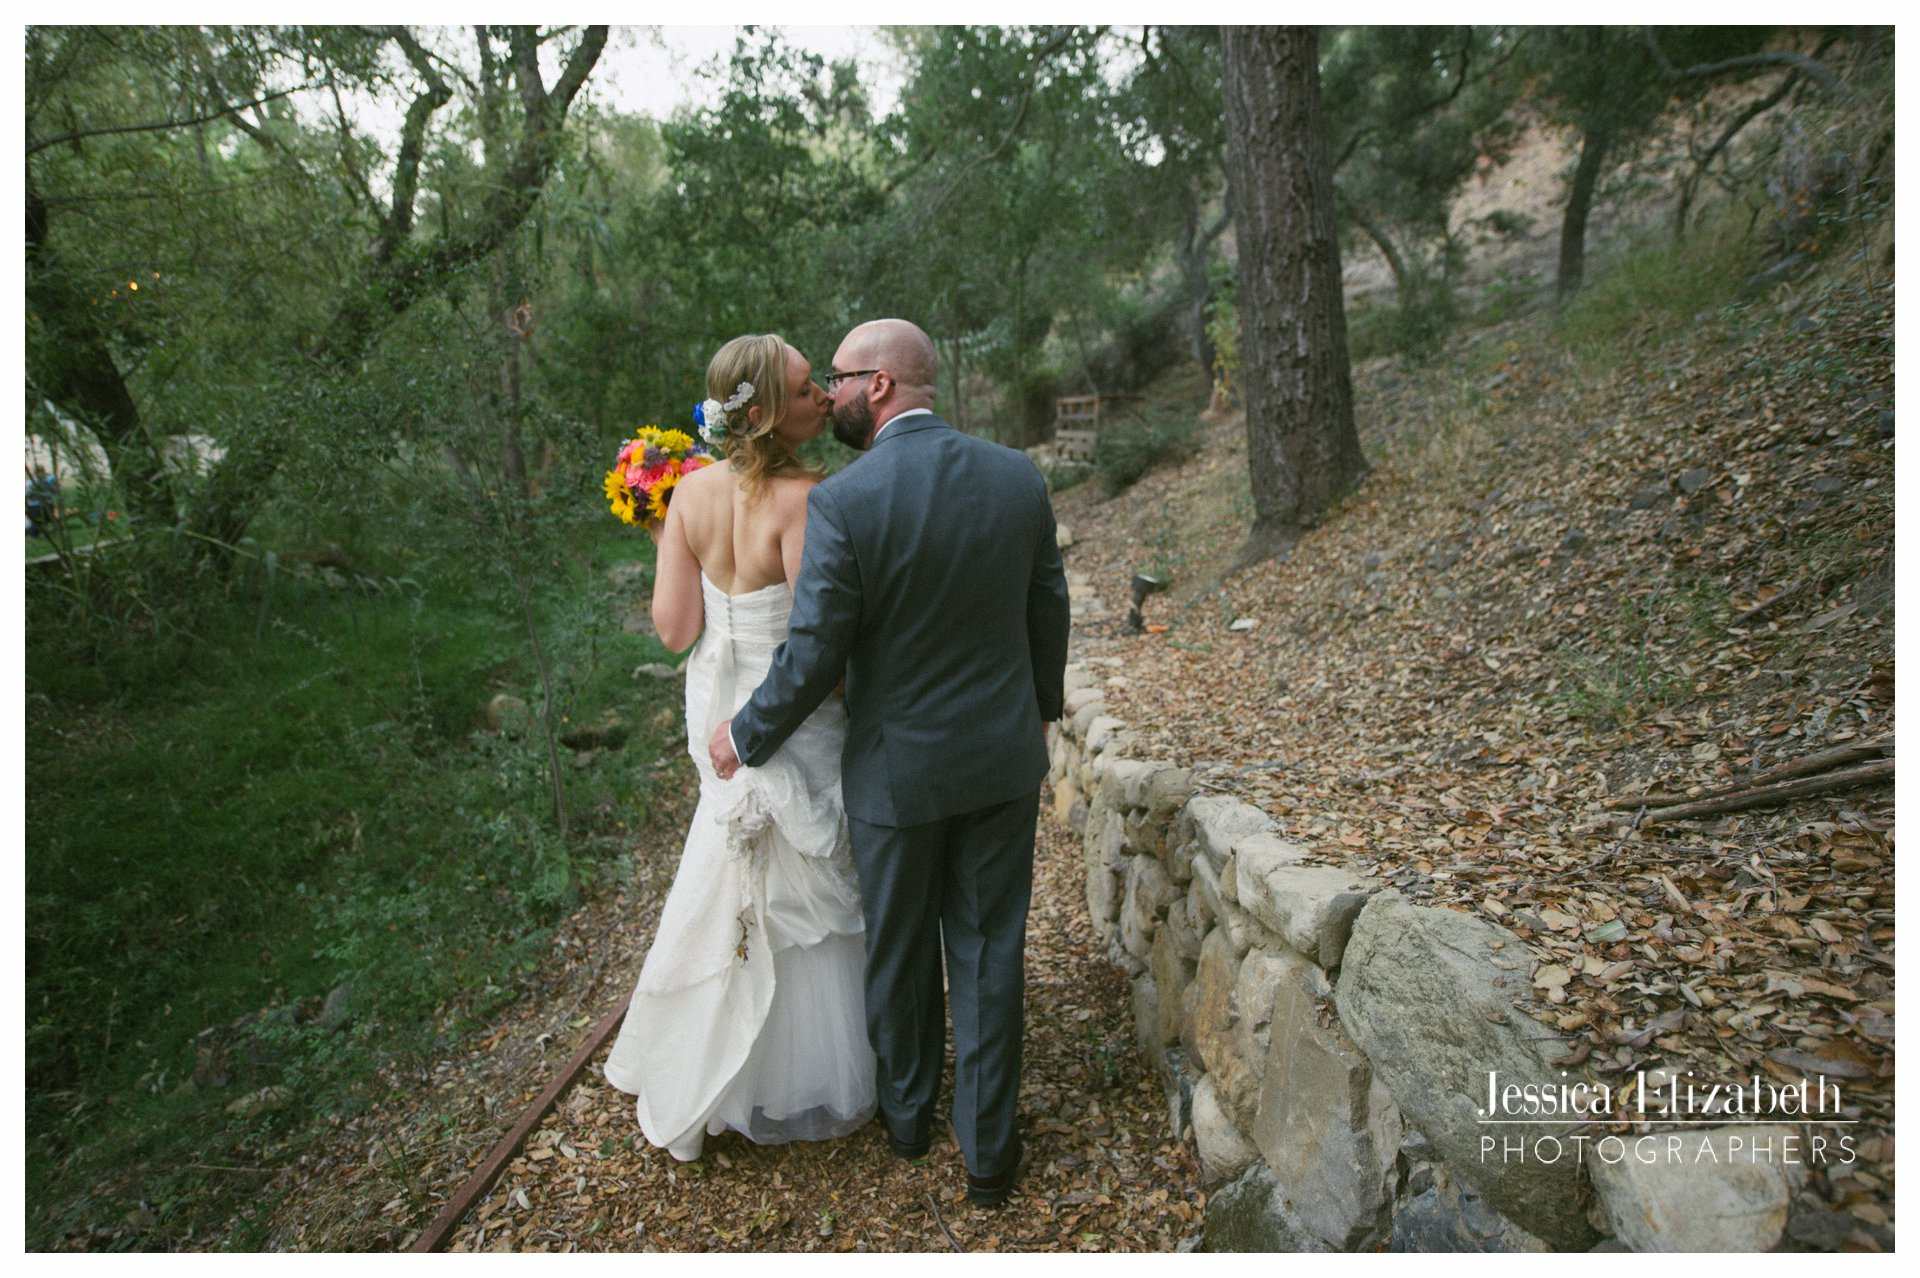 35-The 1909 Malibu Wedding photography by Jessica Elizabeth-w